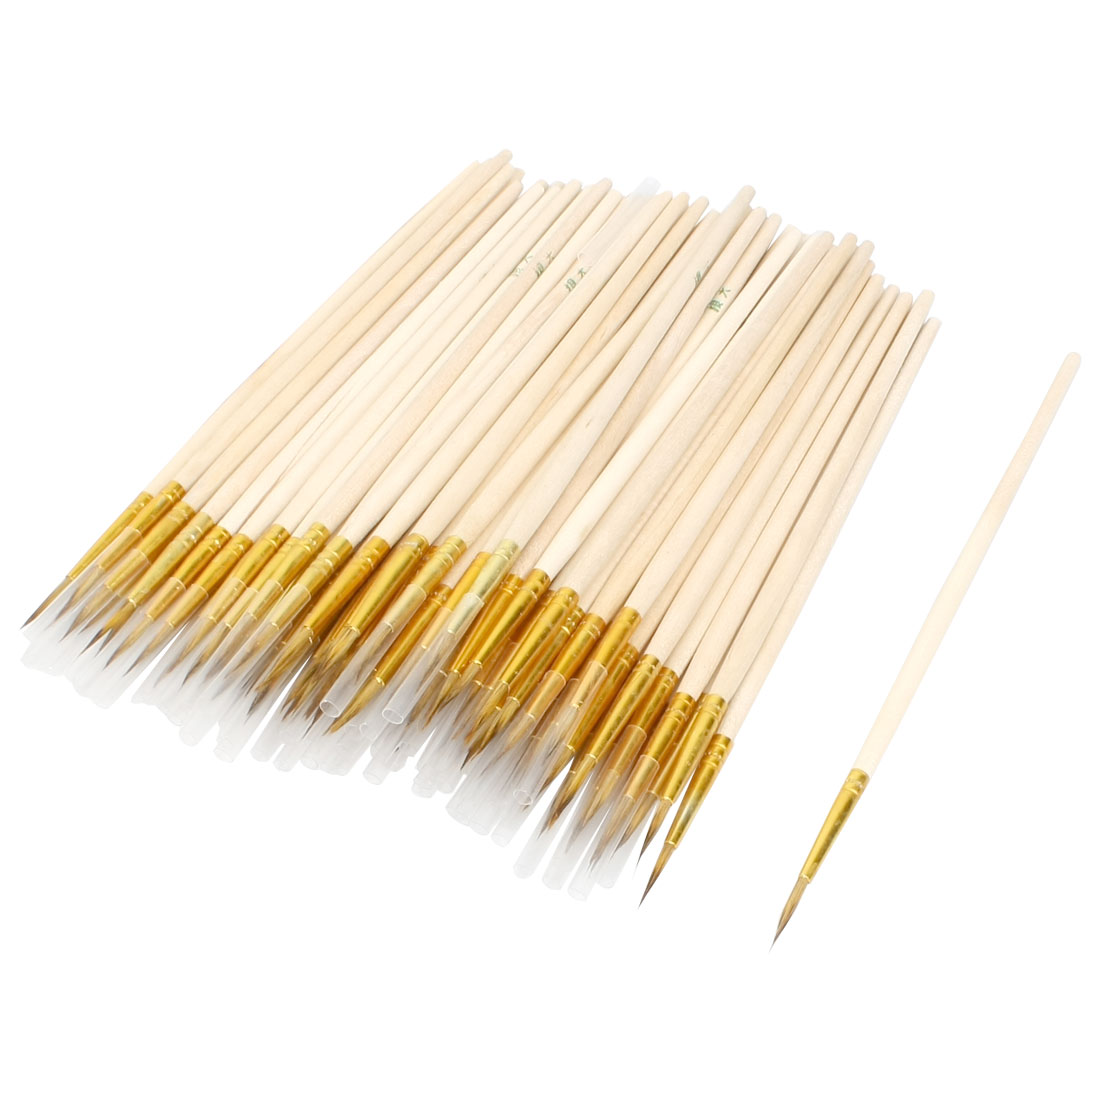 "5.9"" Length Wooden Shaft Chinese Calligraphy Writing Brush 100 Pcs"